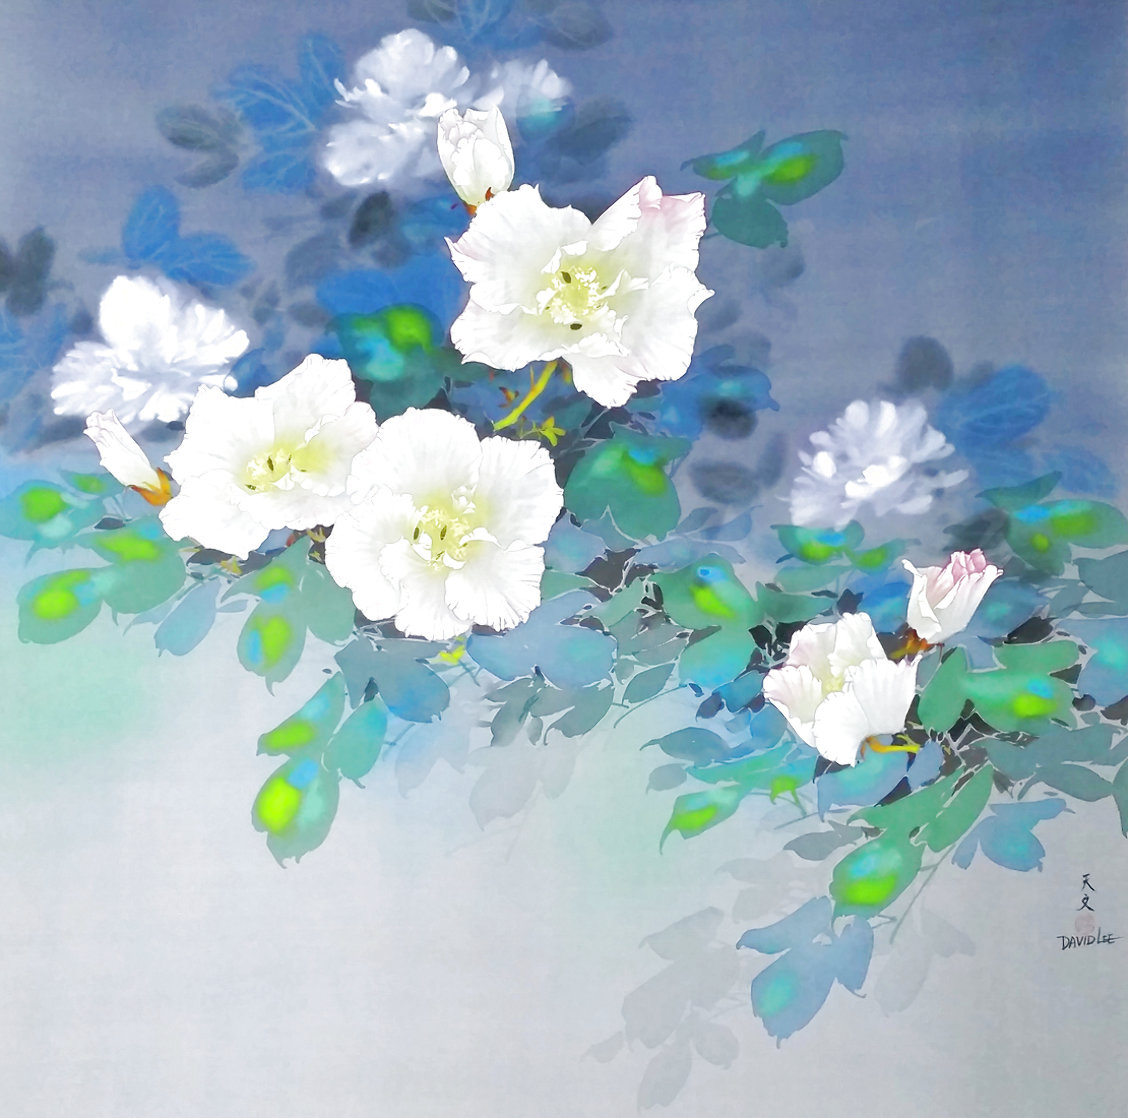 Untitled (White Blossoms) 1990 48x48 Huge Original Painting by David Lee